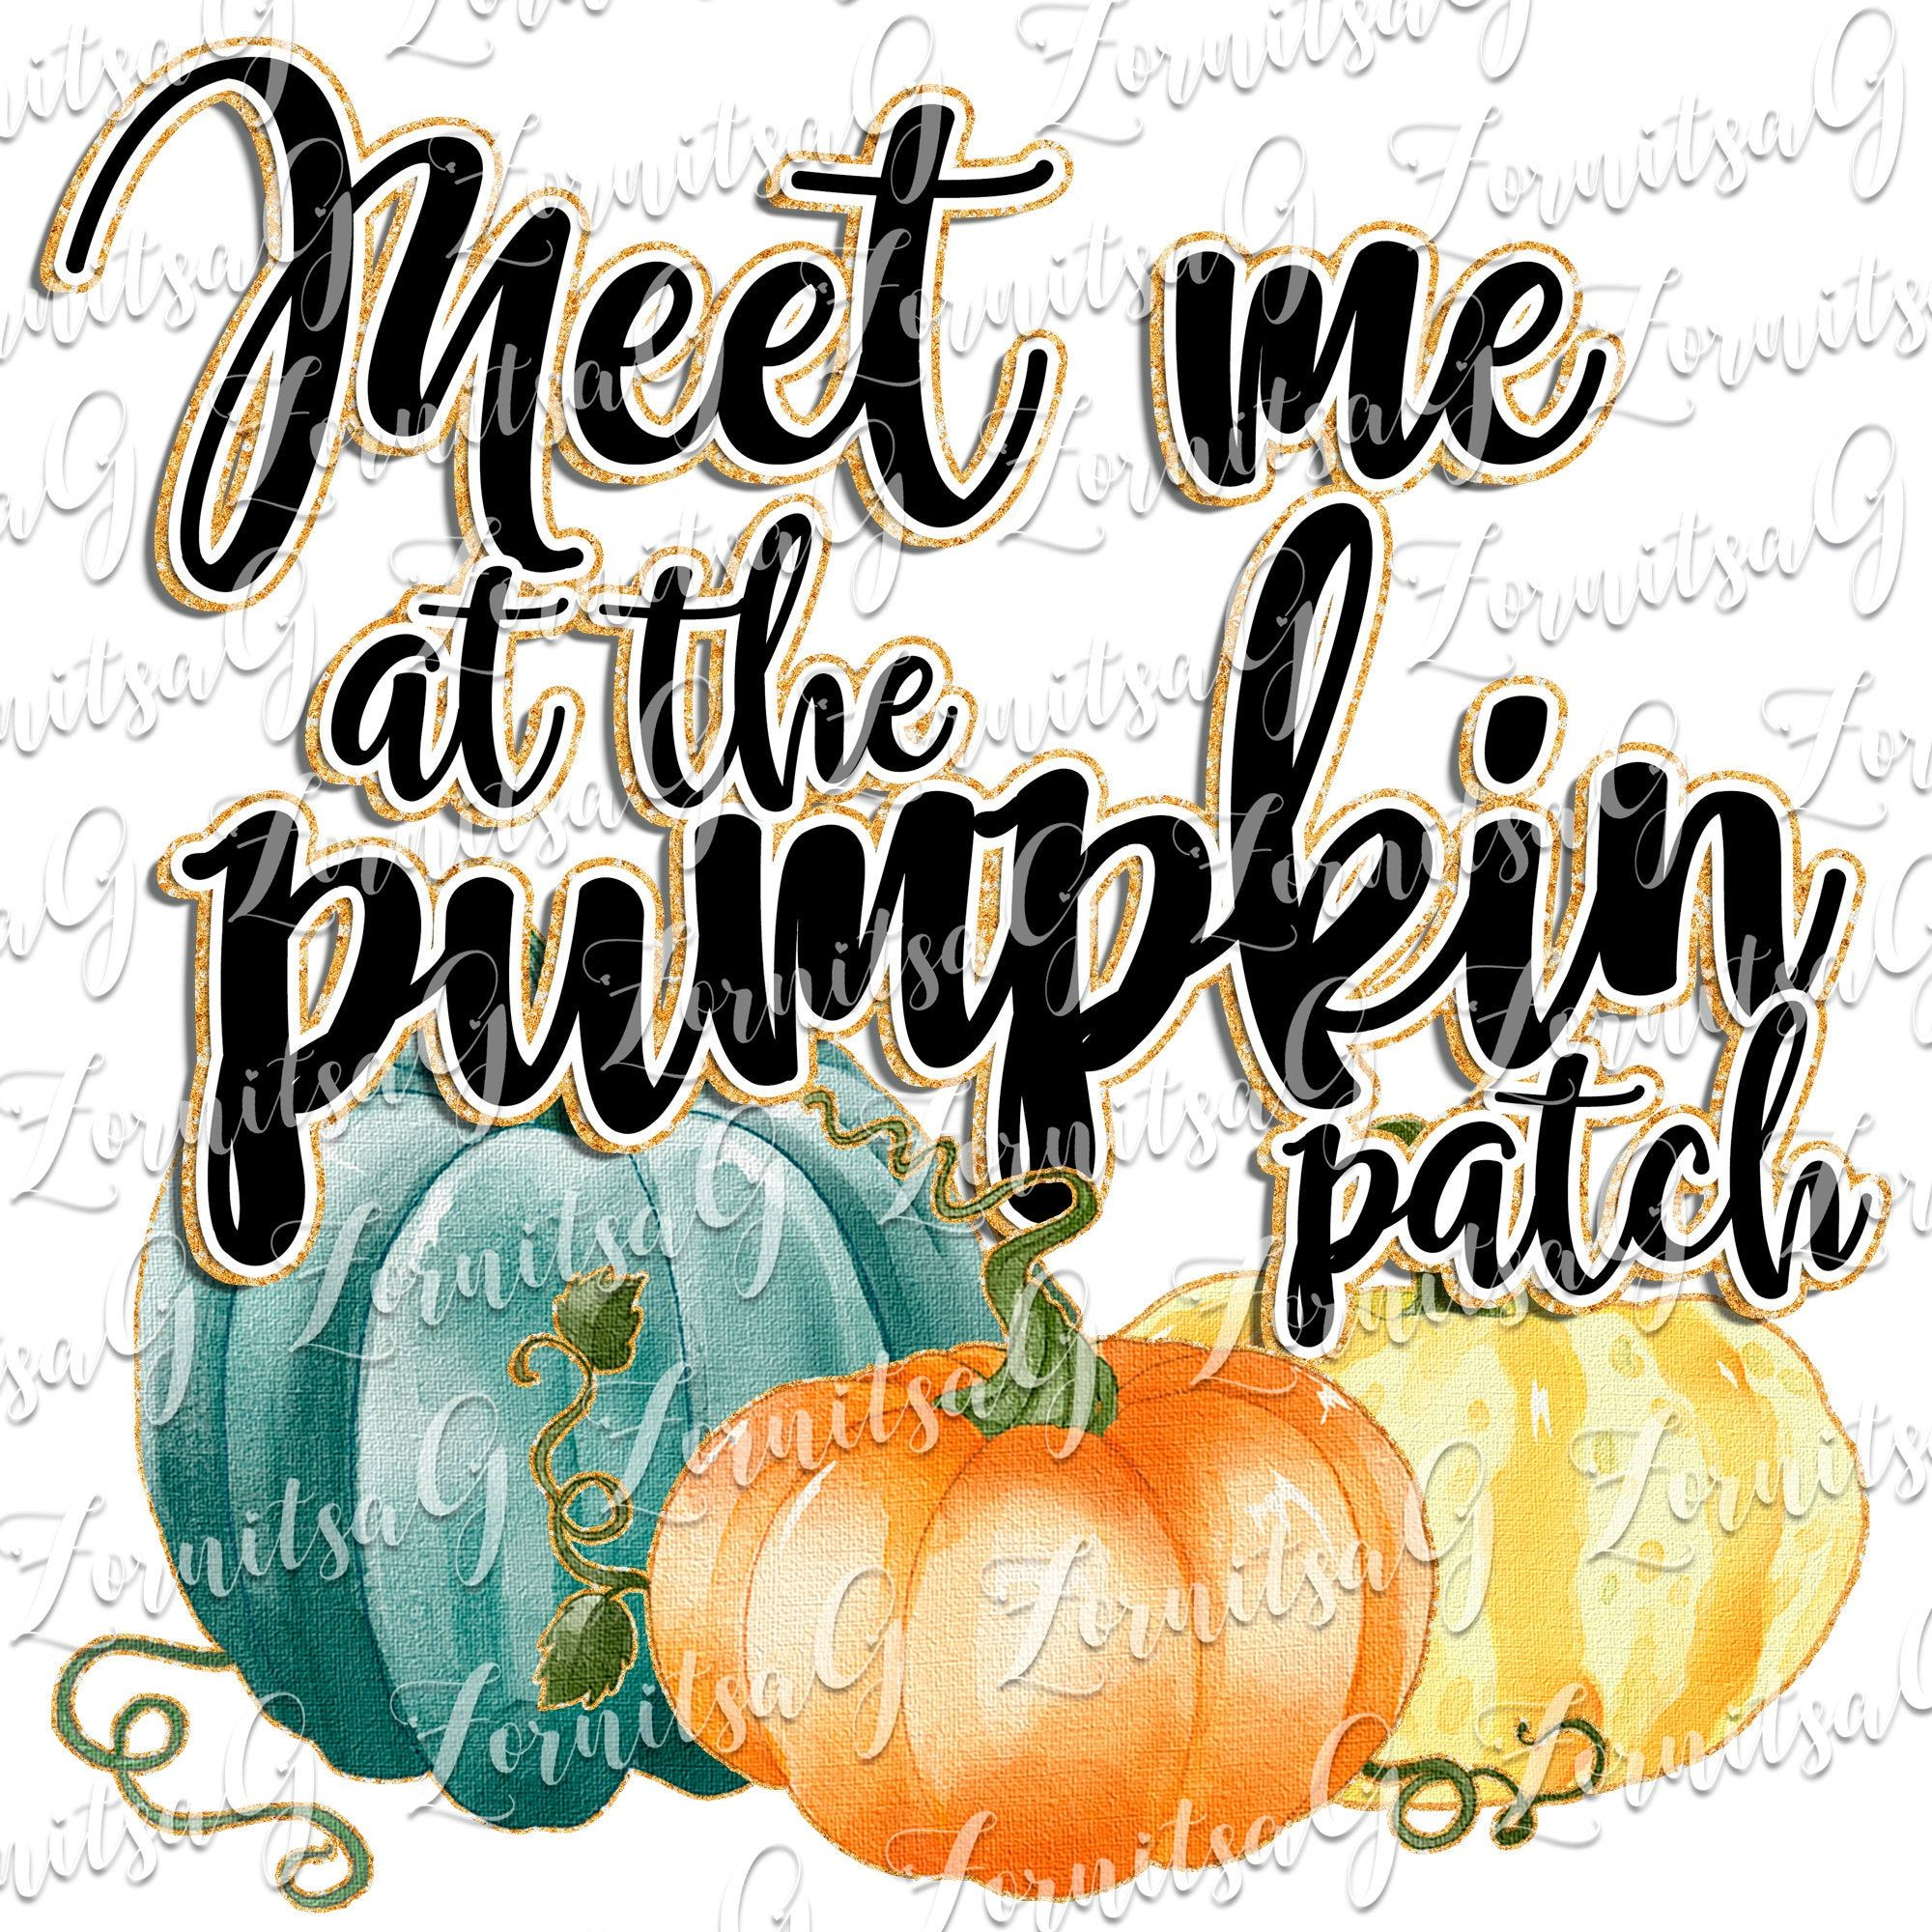 Meet Me At The Pumpkin Patch Png Sublimation Designs Https Etsy Me 2zsqa9w Sublimationdownload Peaceloveprint Fall Decal Sublimation Mugs Halloween Design